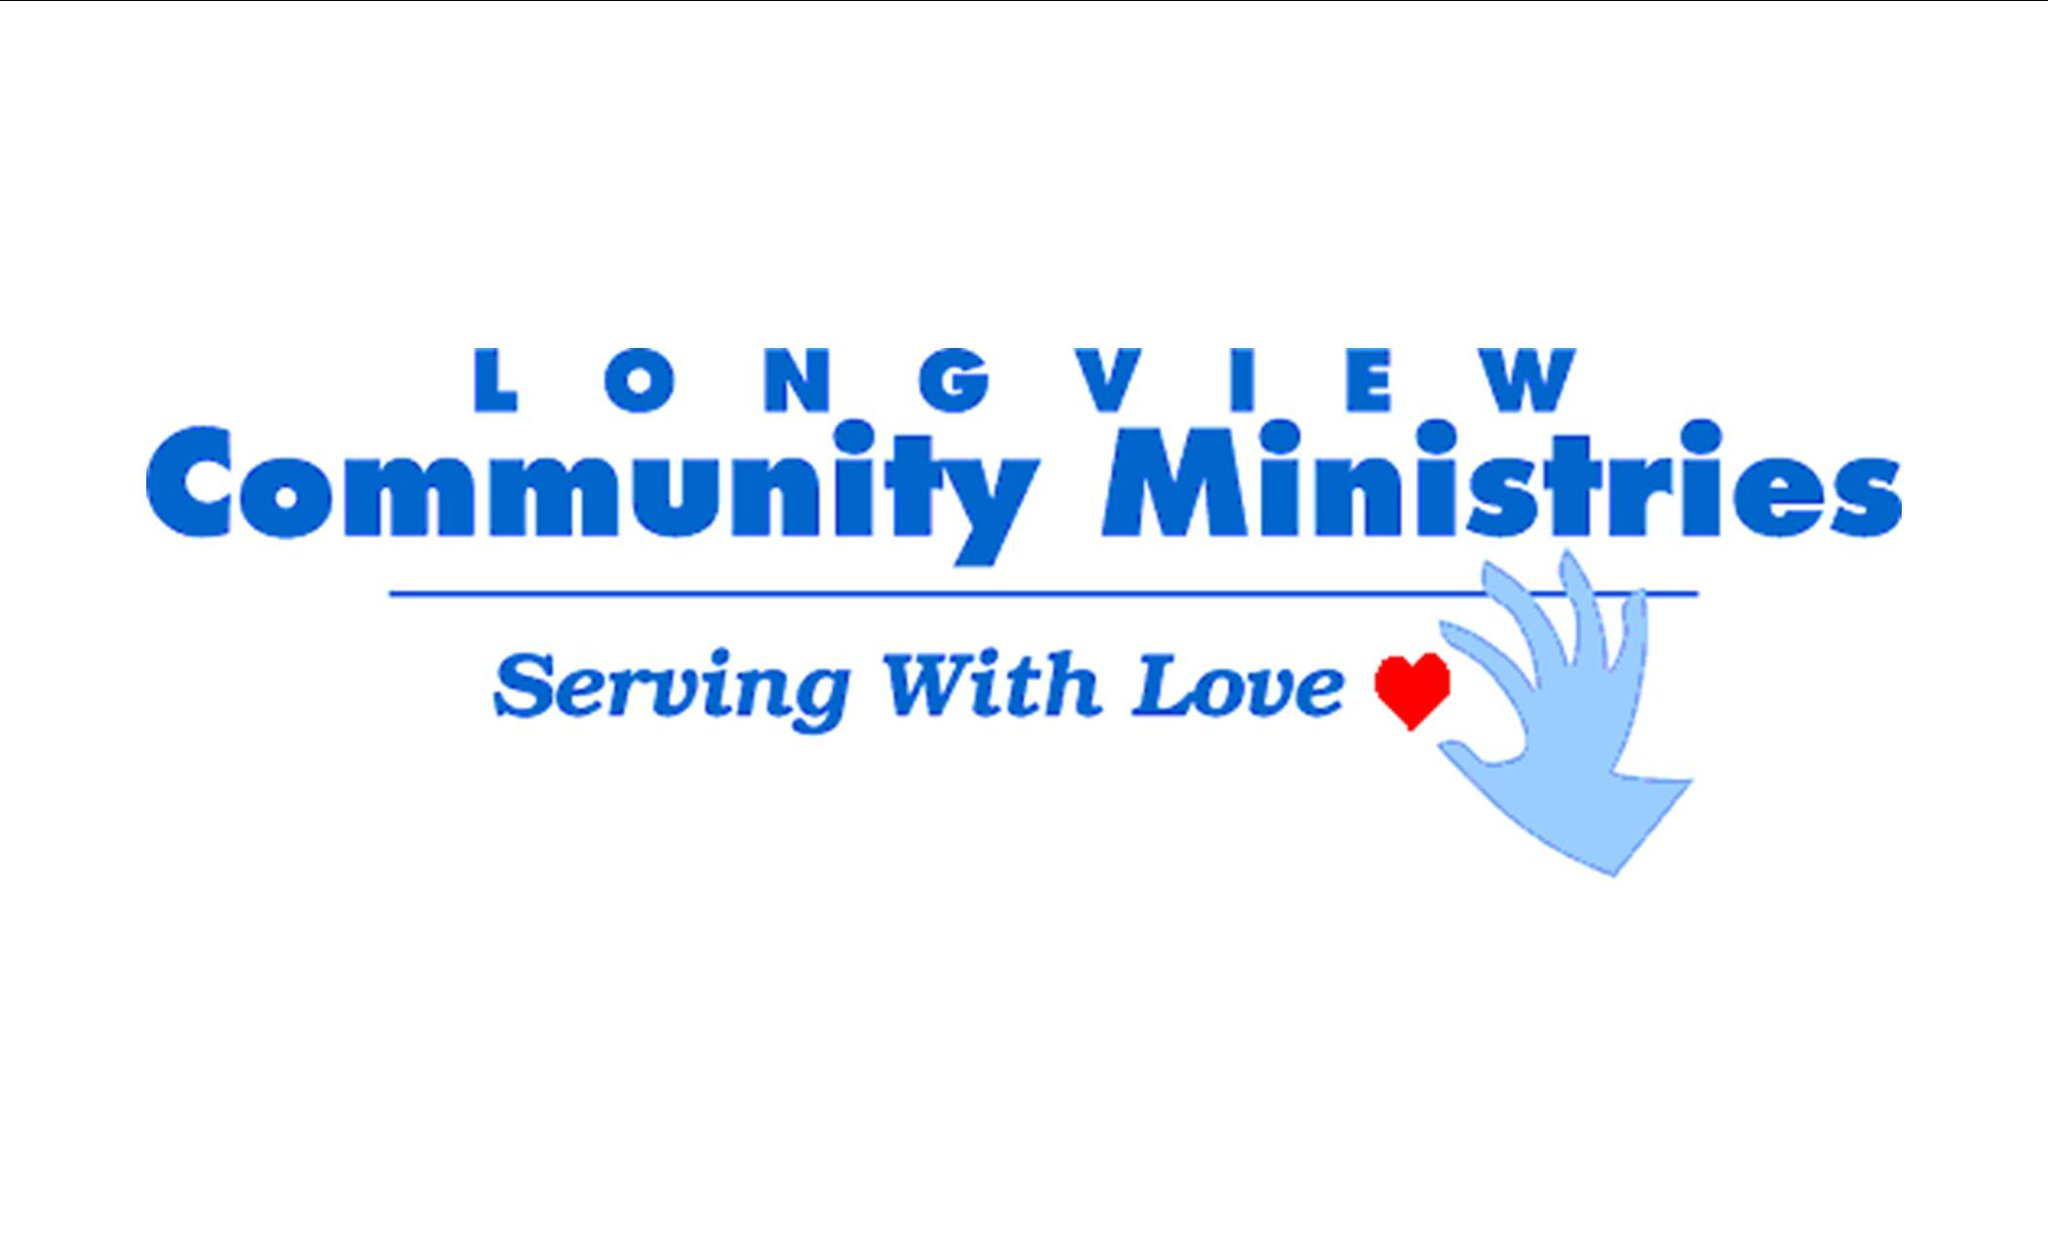 Longview Community Ministries - 506 N Second StreetLongview, TX 75601903-753-3561info@longviewcommunityministries.org